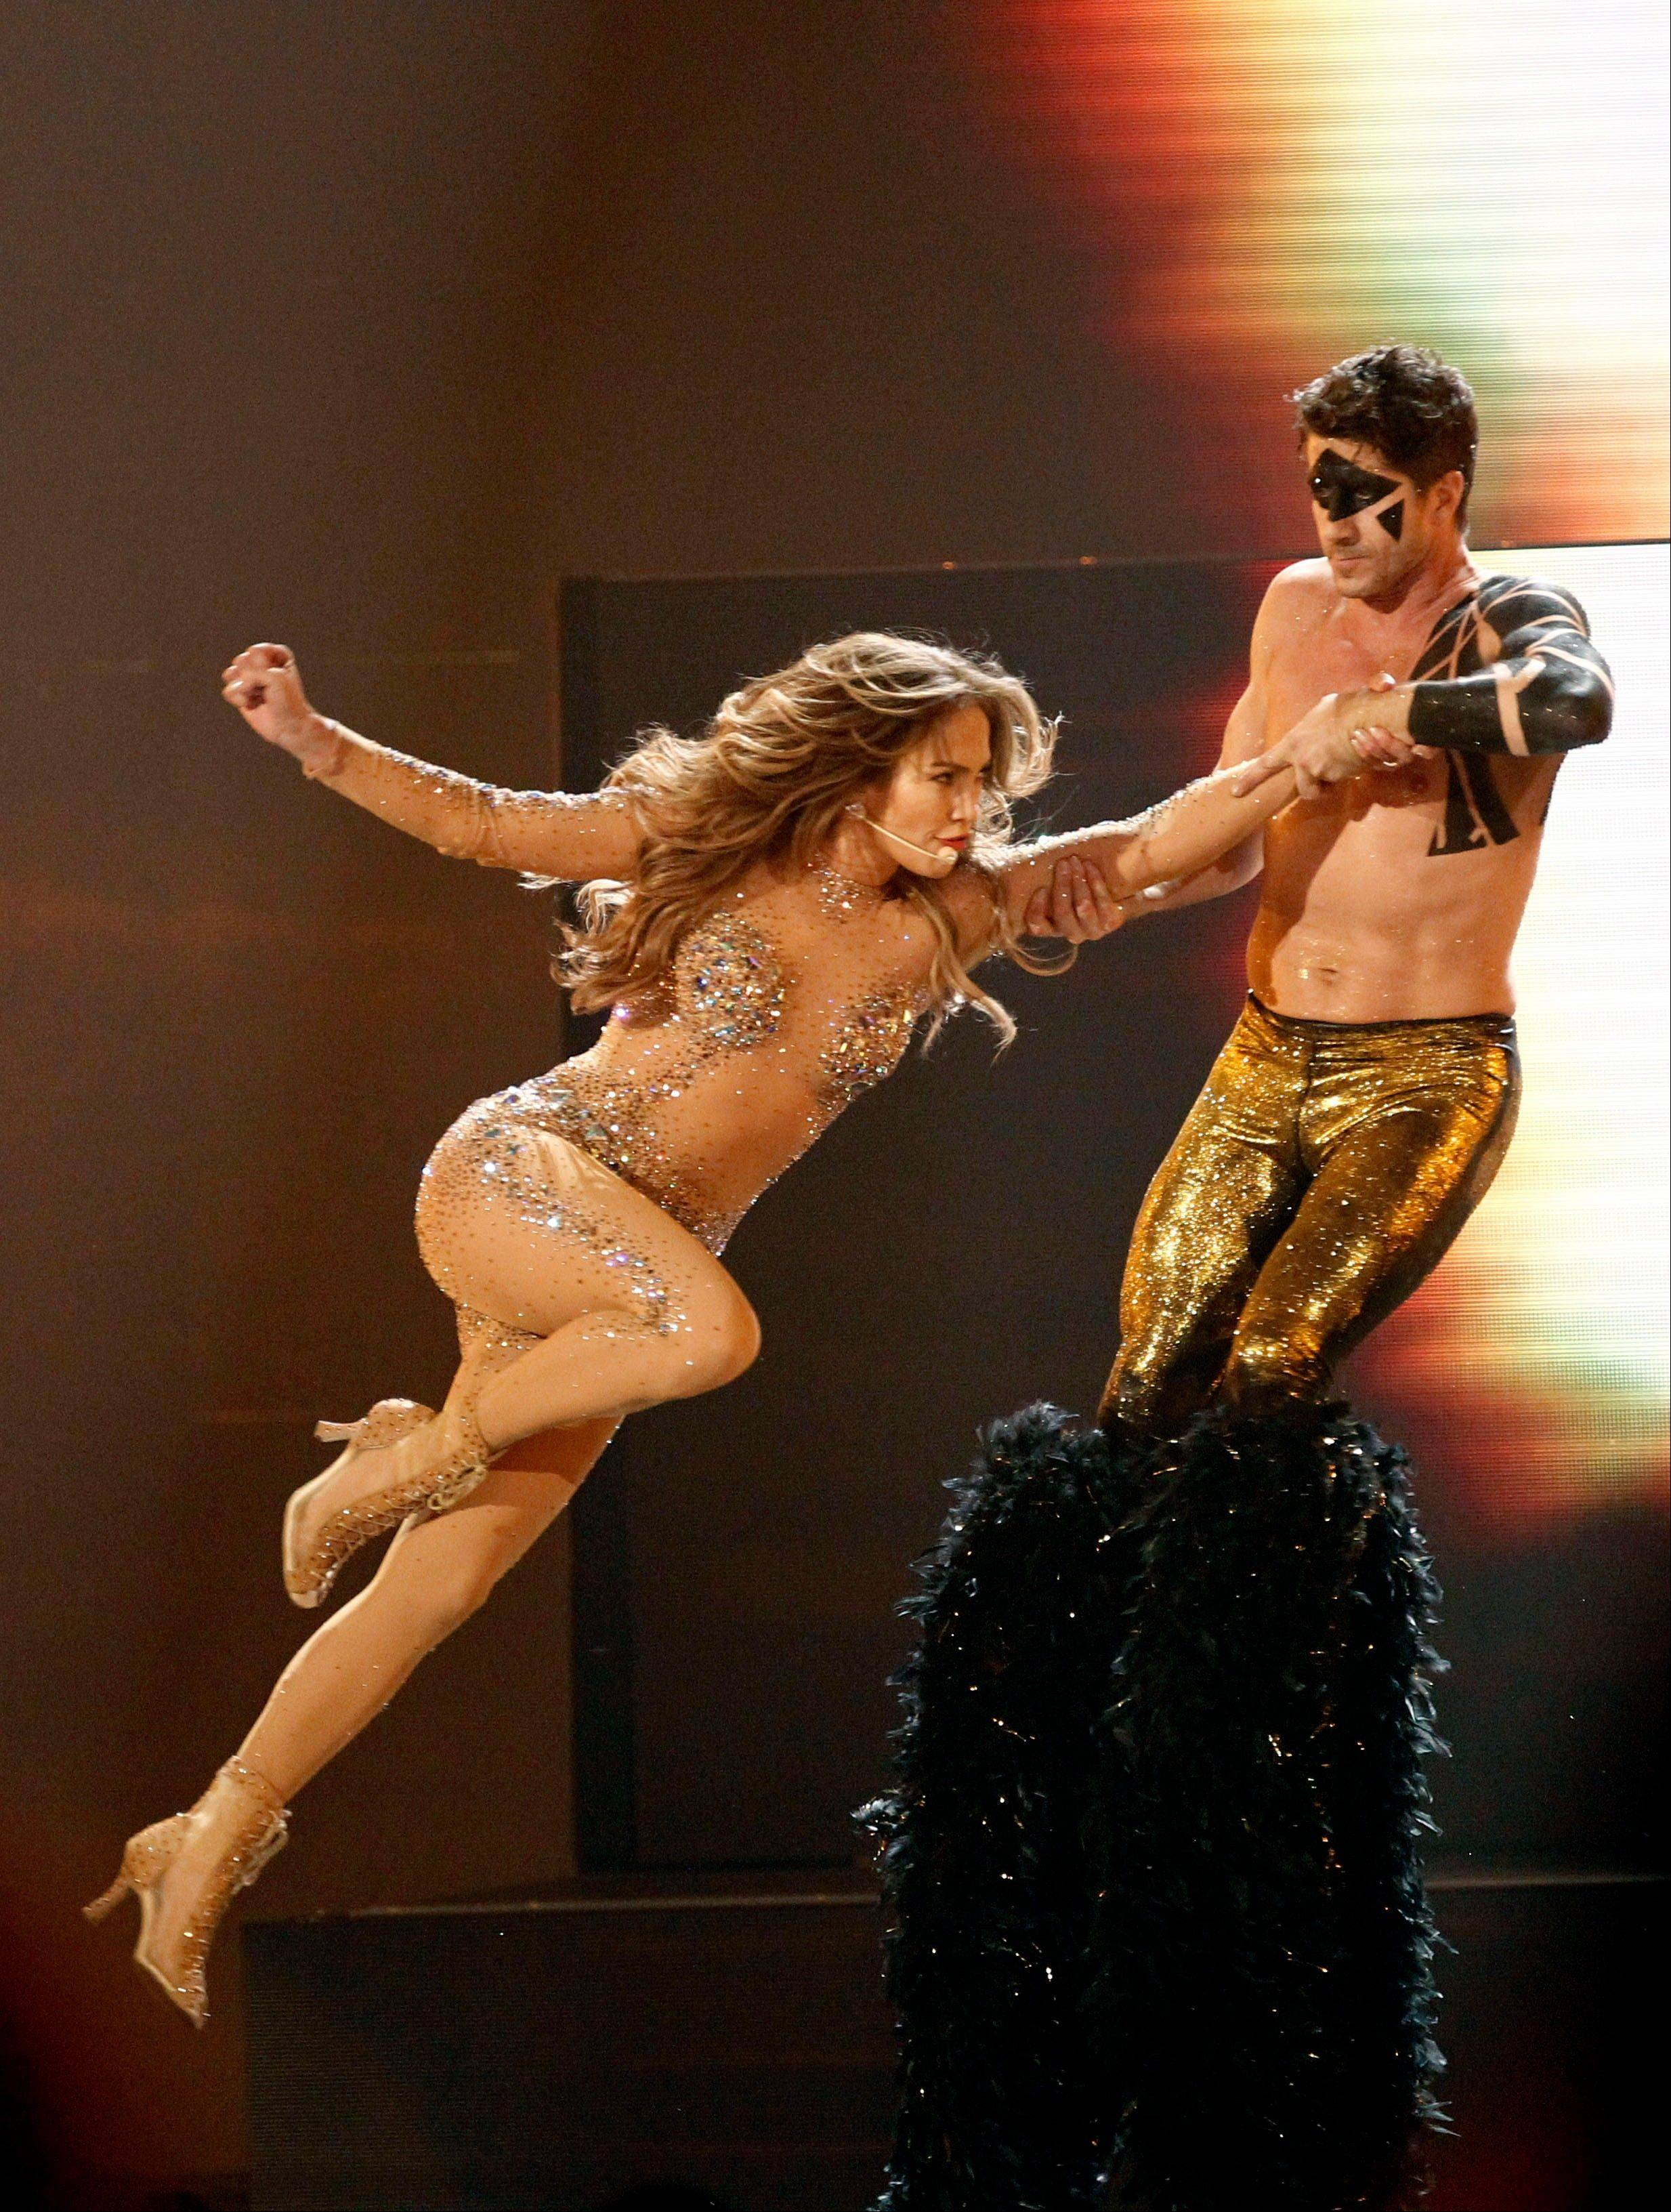 Jennifer Lopez performs at the 39th Annual American Music Awards on Sunday, Nov. 20, 2011 in Los Angeles.